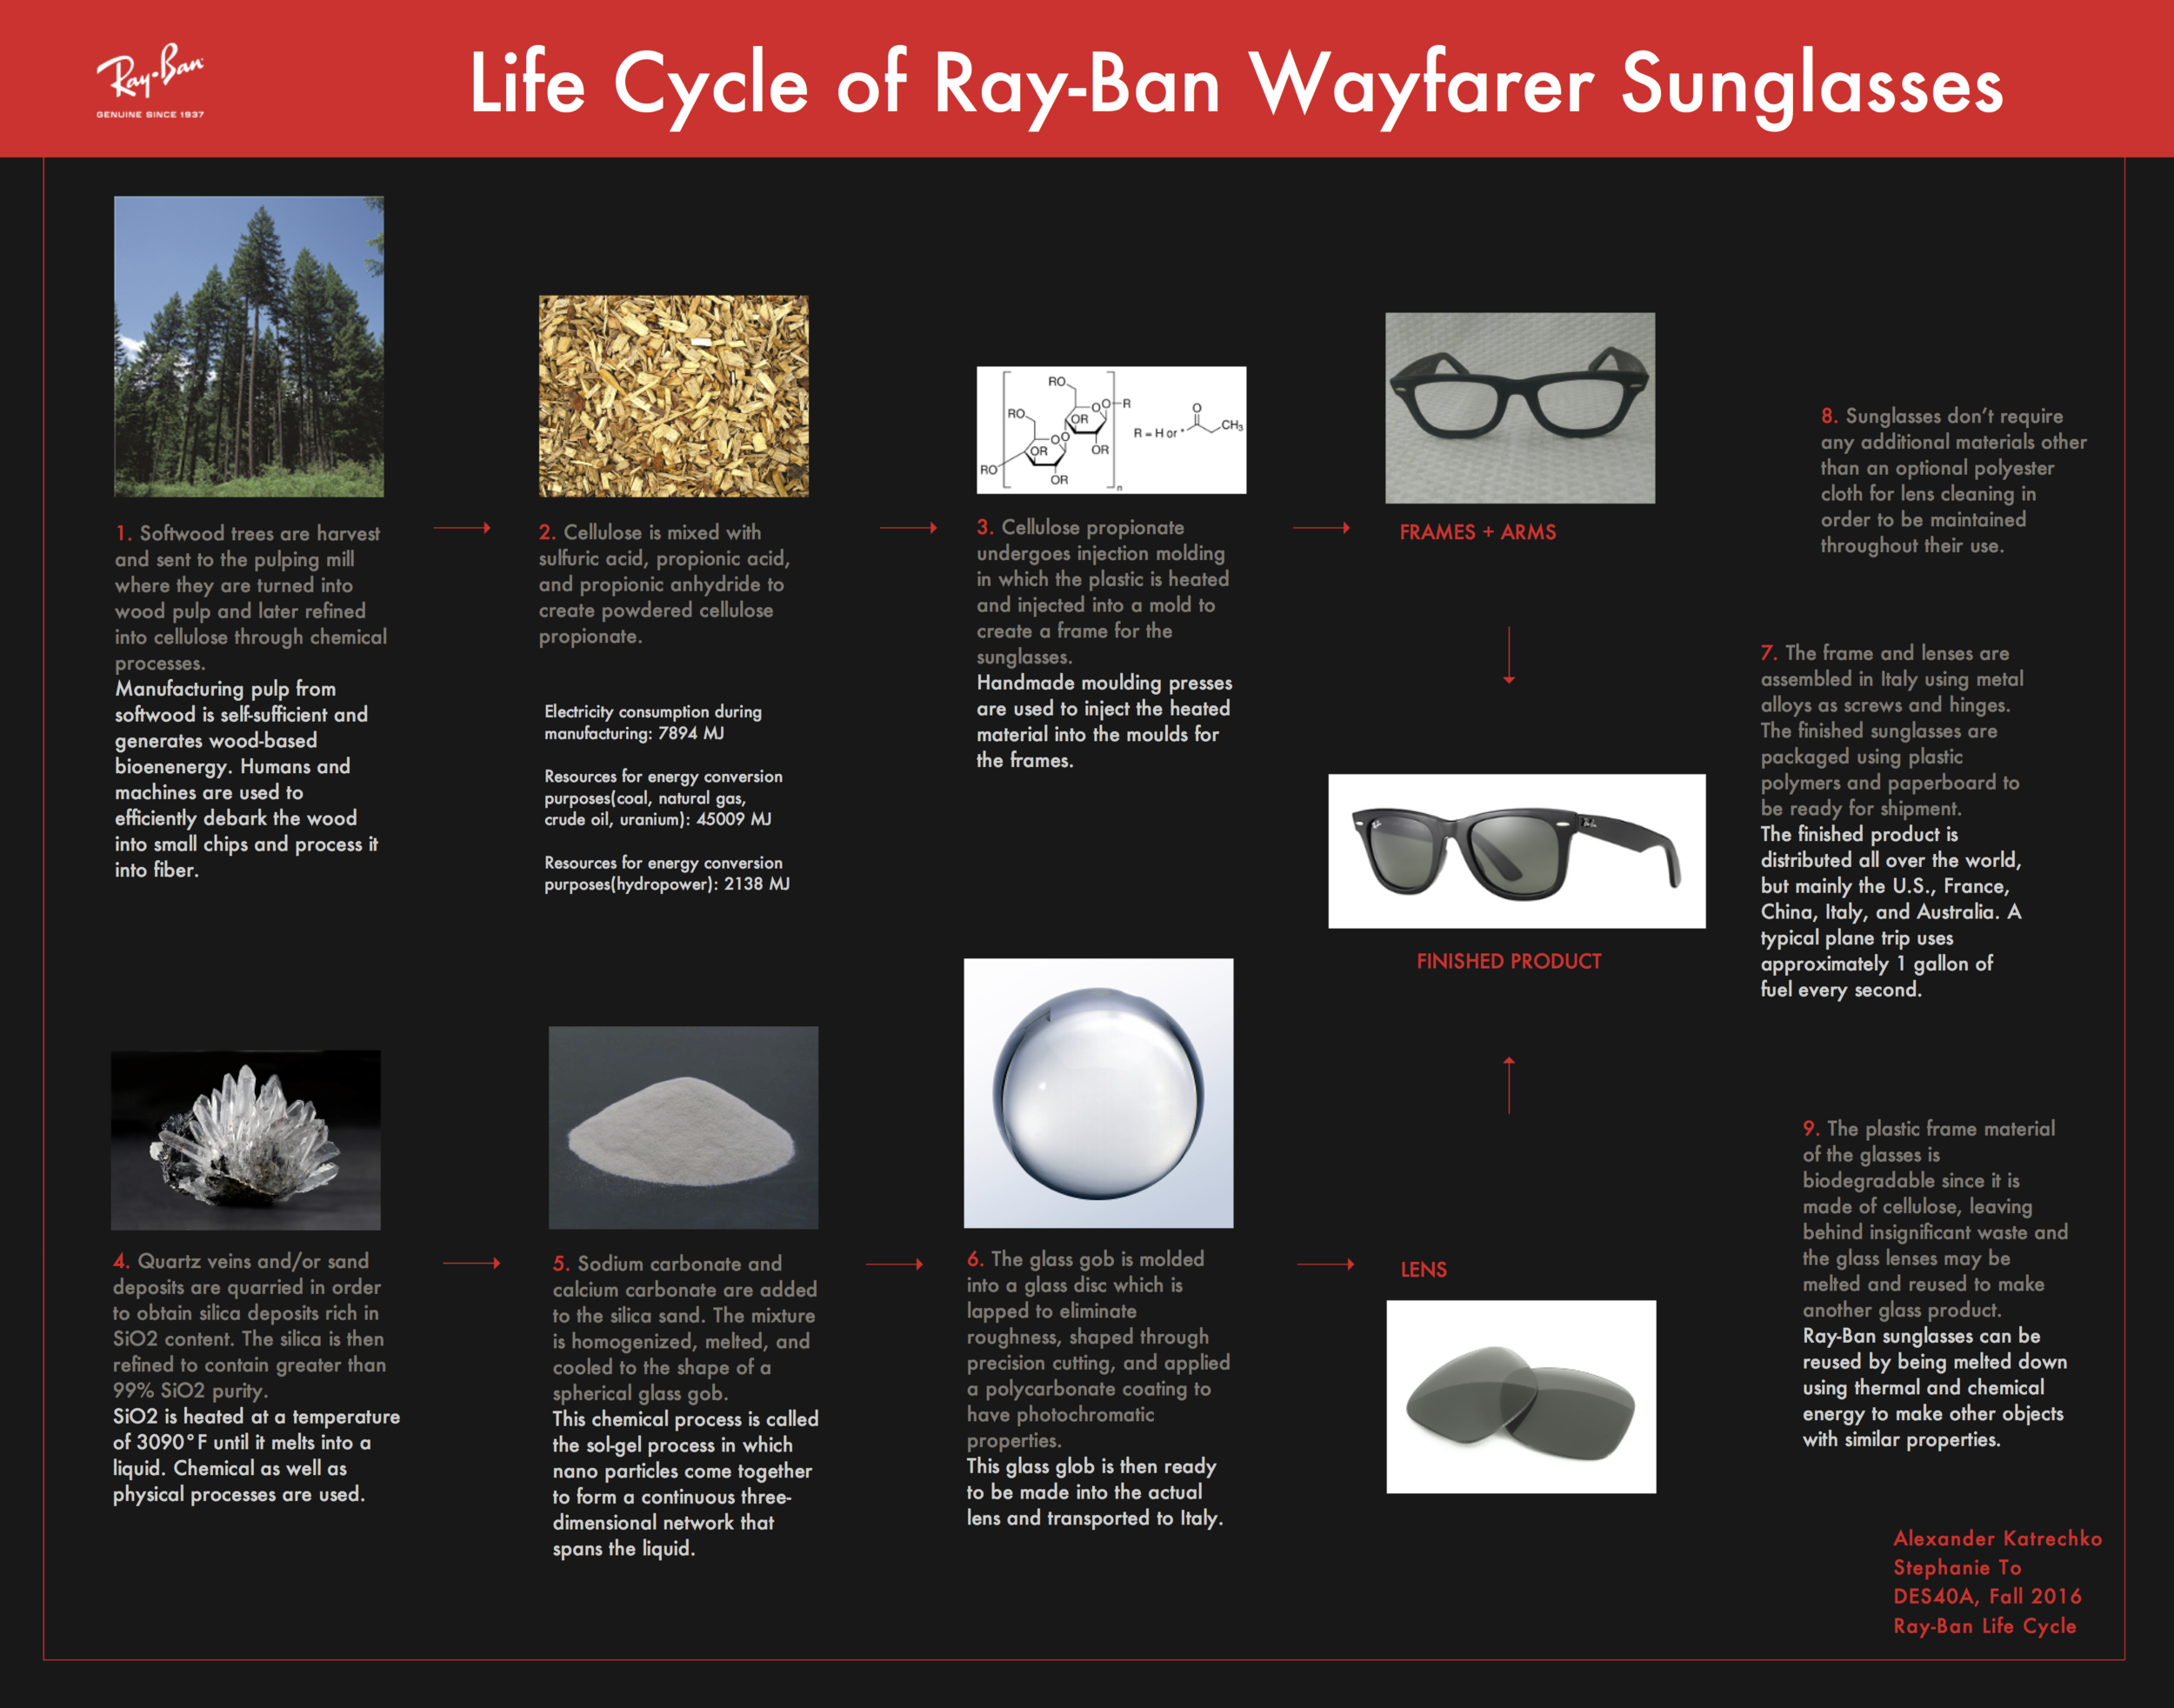 Life Cycle of Ray-Ban Sunglasses